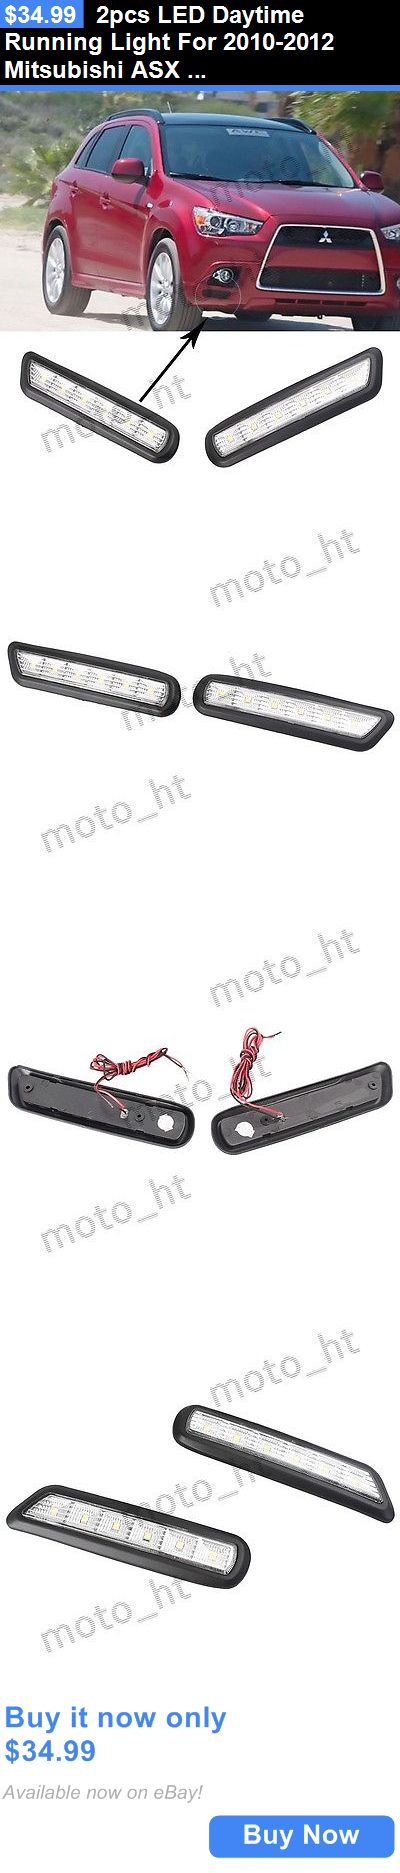 Motors Parts And Accessories: 2Pcs Led Daytime Running Light For 2010-2012 Mitsubishi Asx Outlander Sport Drl BUY IT NOW ONLY: $34.99